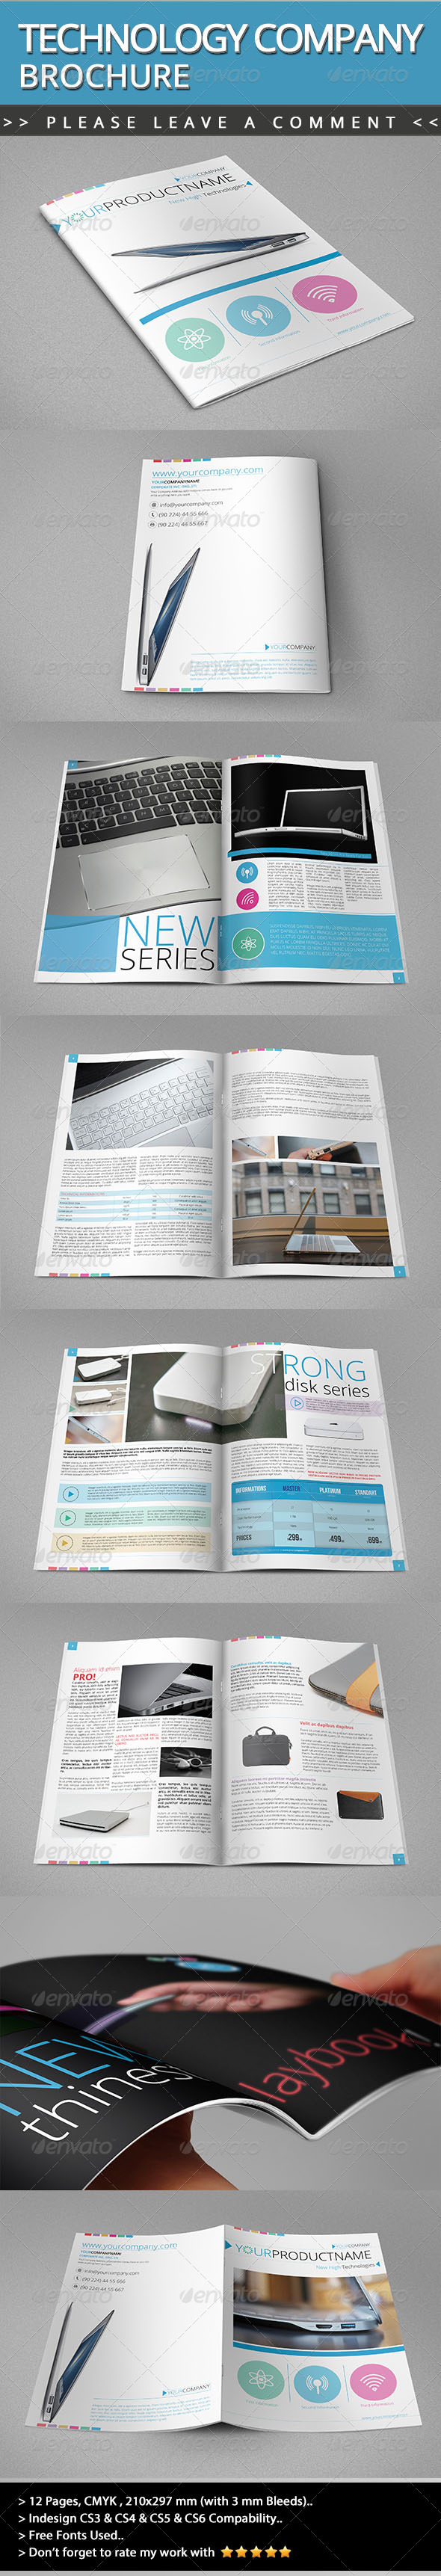 GraphicRiver Technology Company Brochure V01 4786592